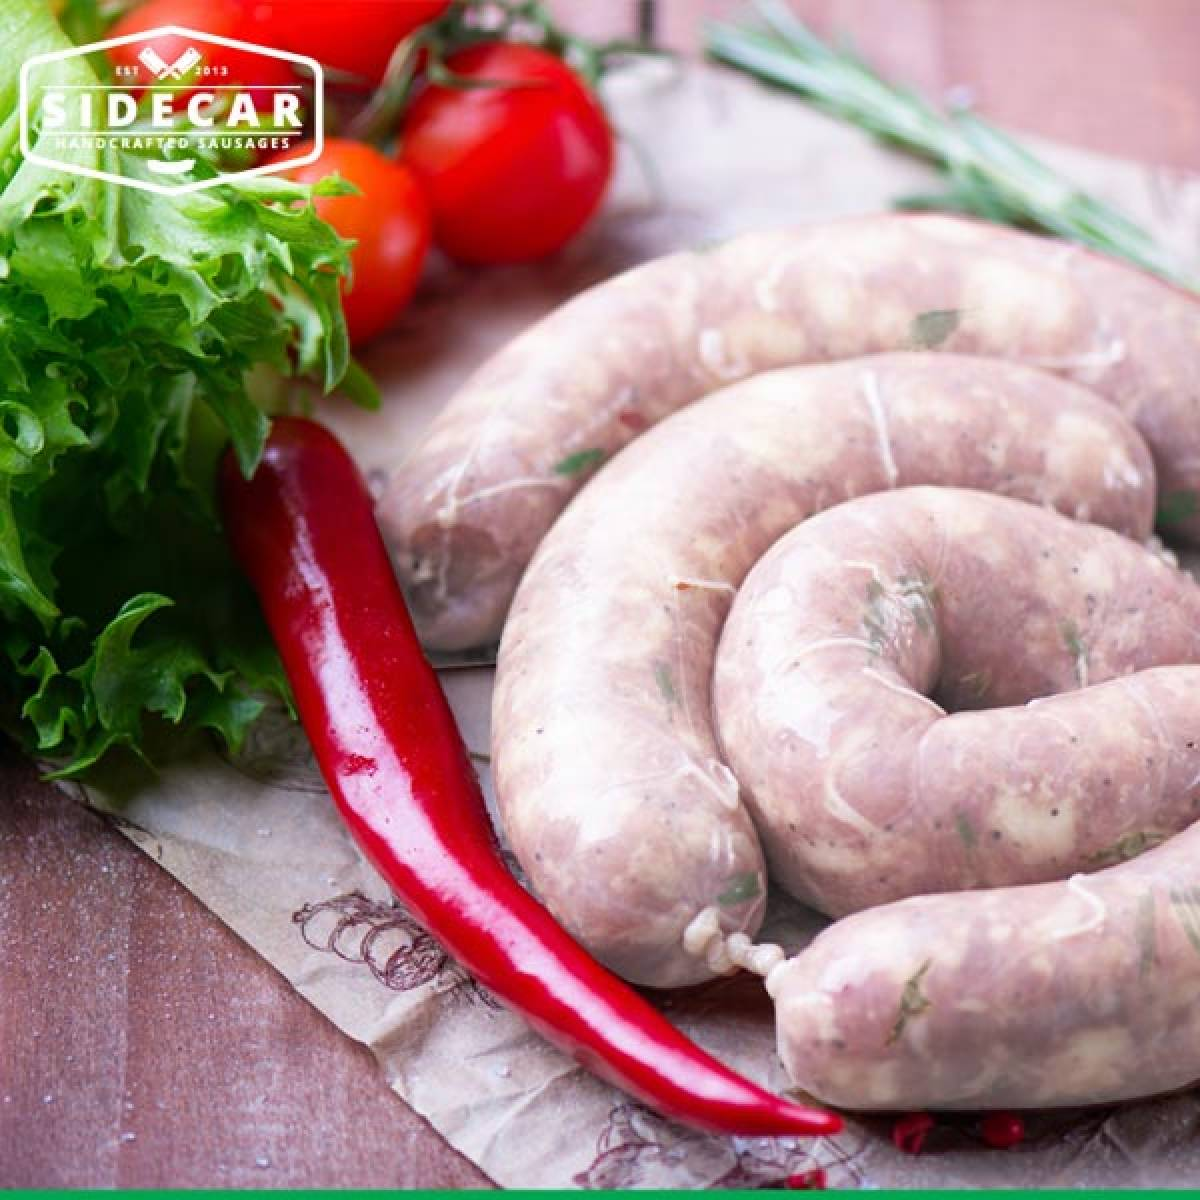 SAUCY SAUSAGES FROM SIDECAR - powerful taste in small packages